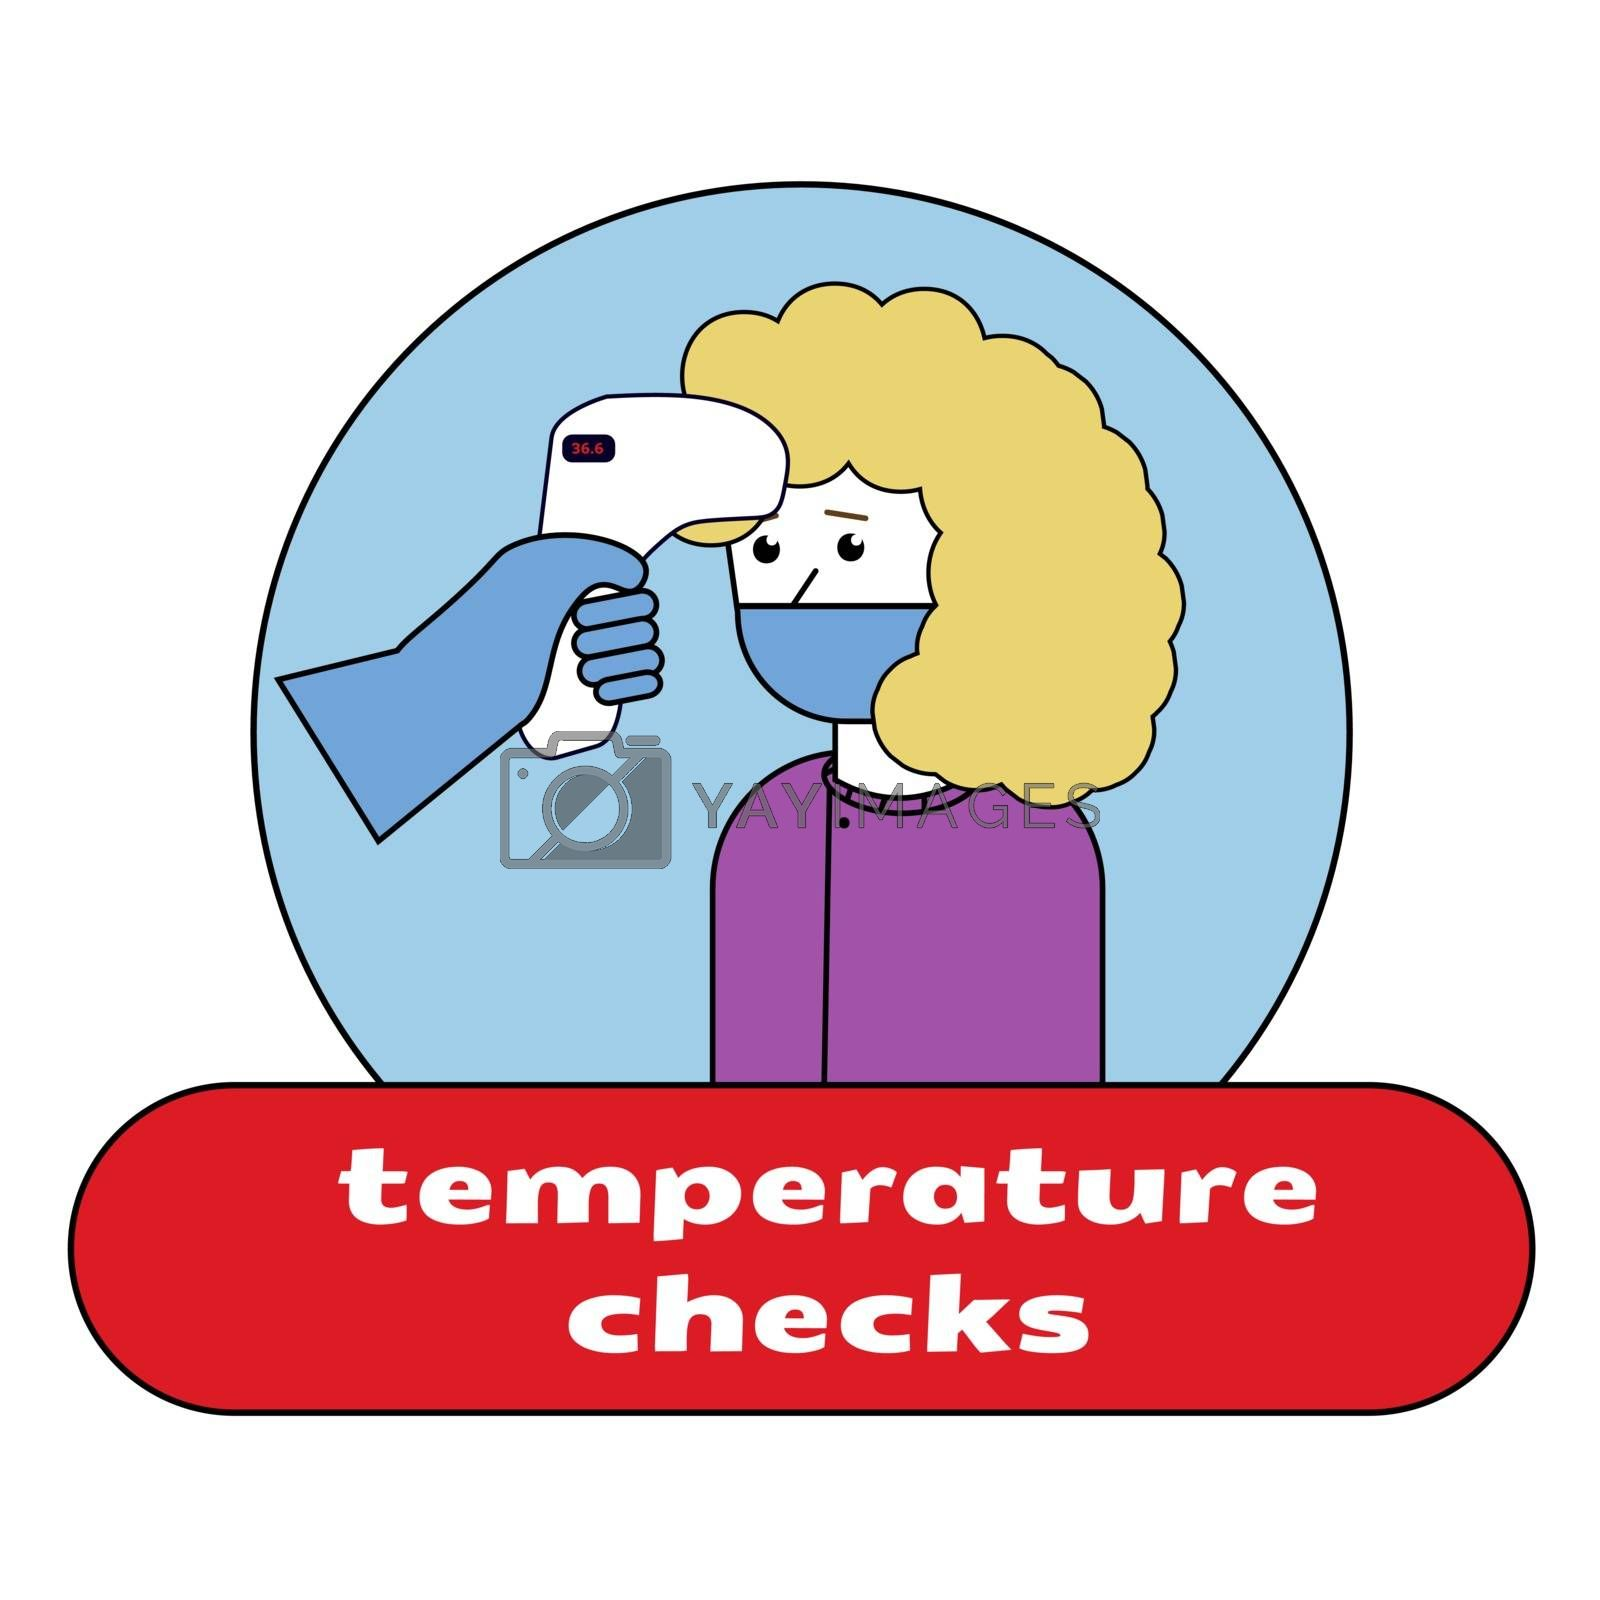 Woman measuring body temperature and wearing a face mask, COVID-19 illustration. Temperature check by zaryov